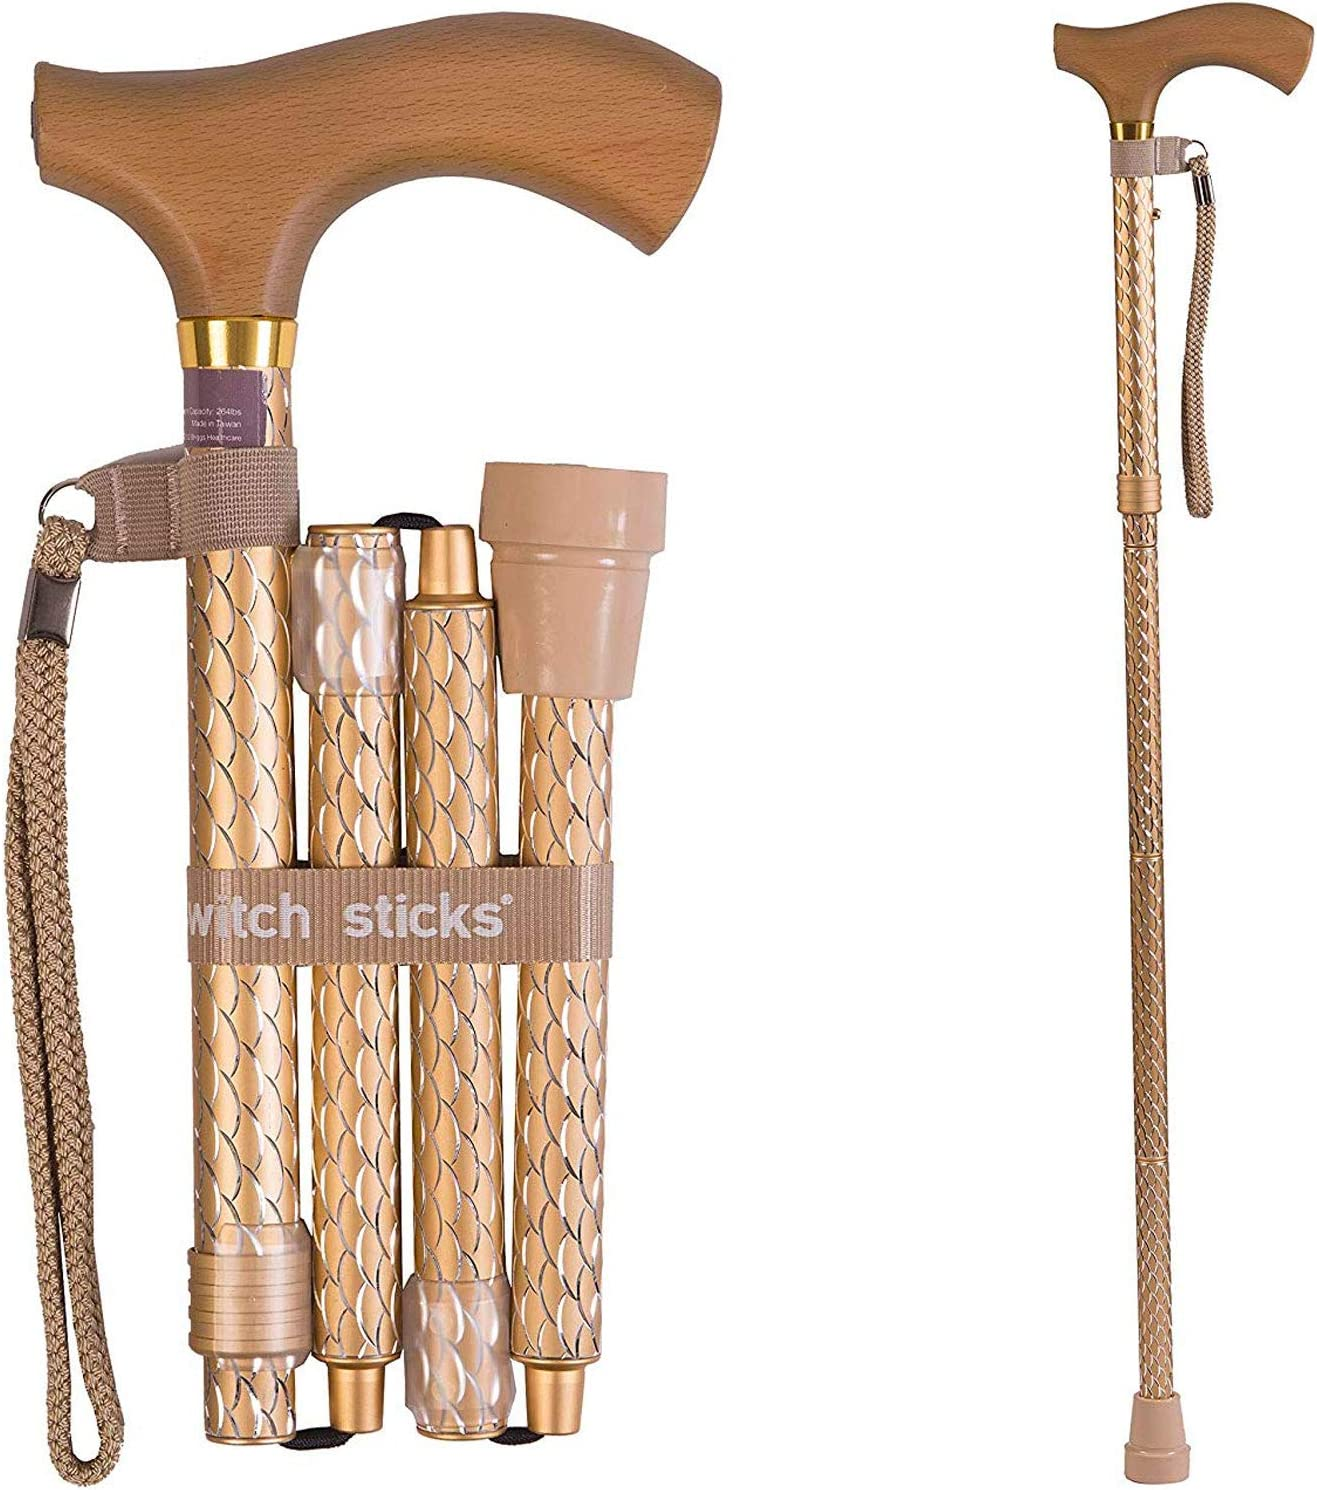 Switch Sticks Adjustable Folding Walking Cane and Walking Stick Collapses and Adjusts from 32 to 37 inches, Engraved Pearl Gold: Home & Kitchen